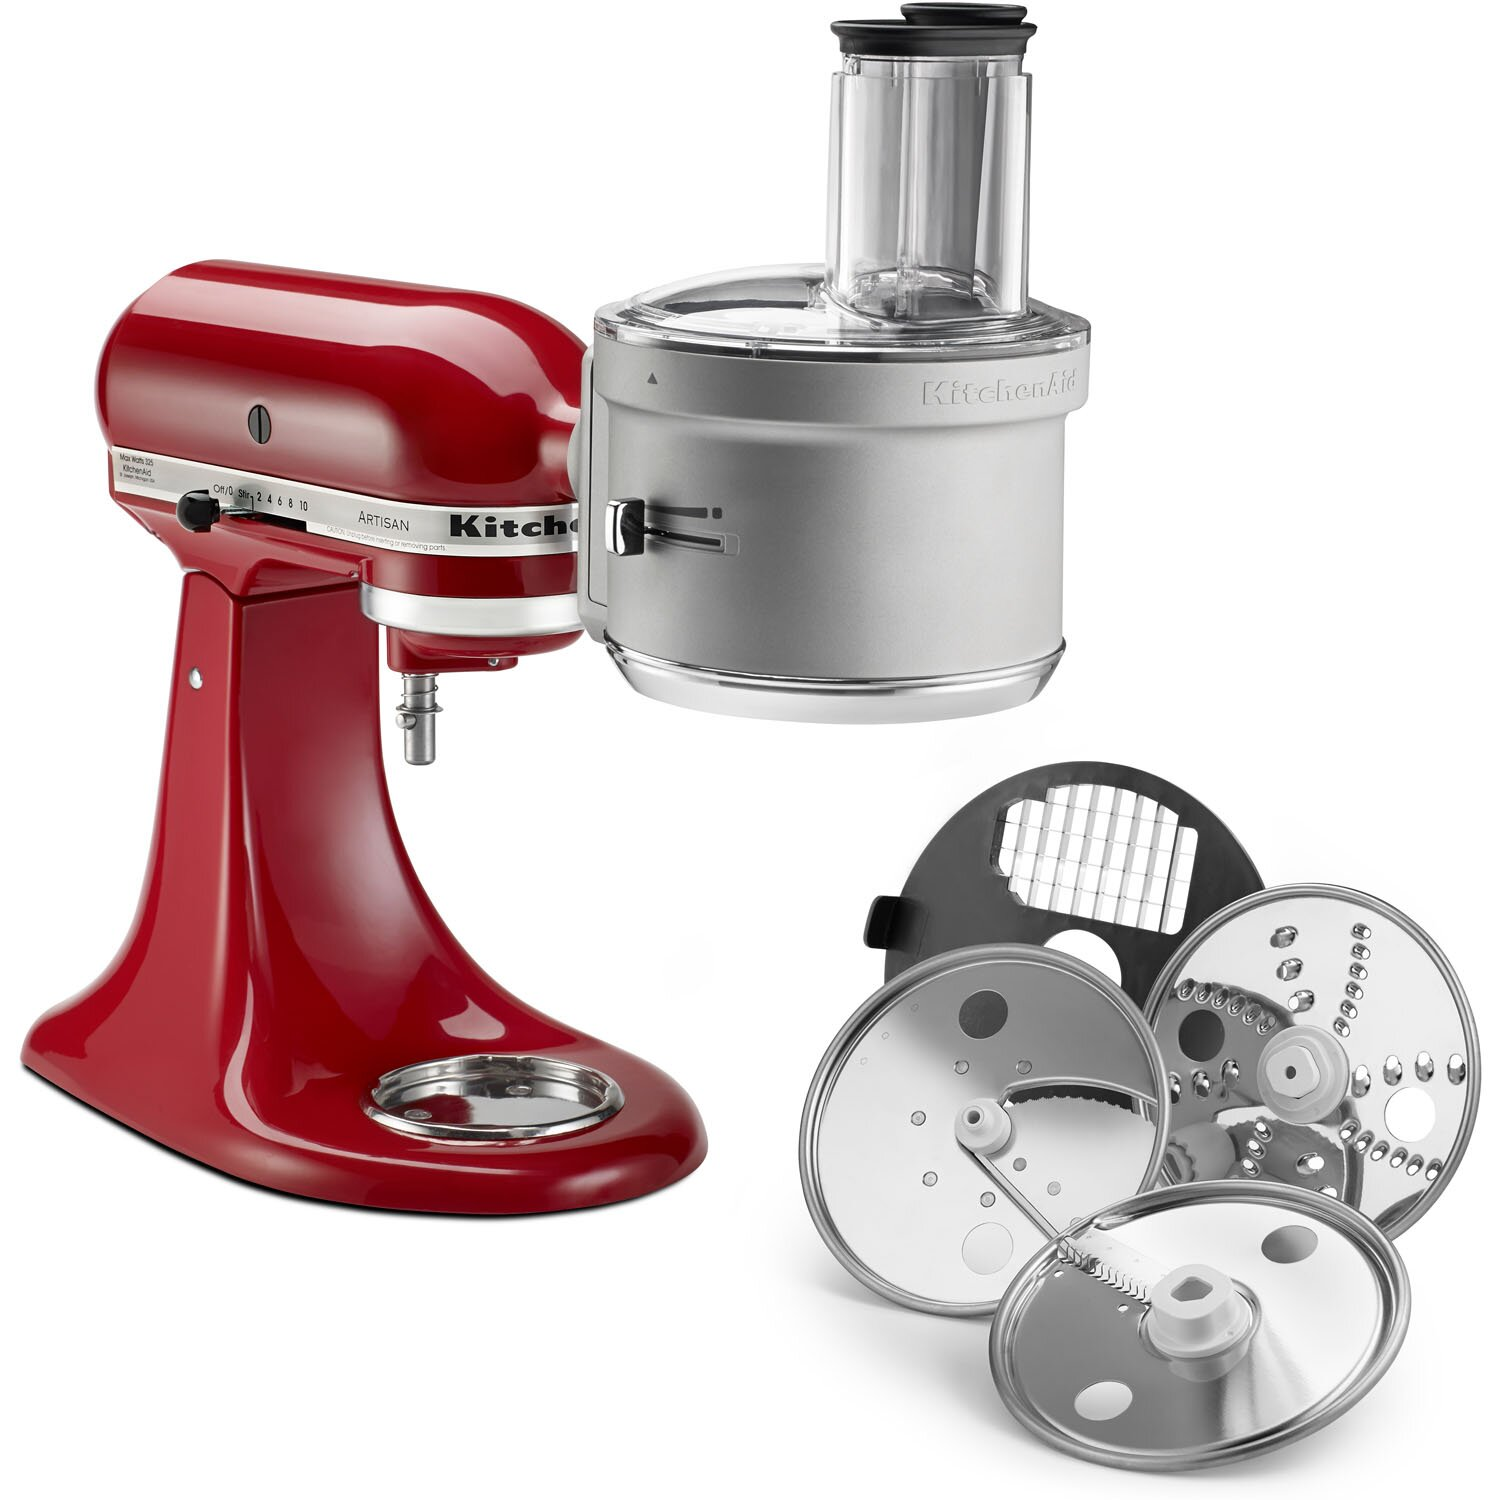 KitchenAid Food Processor Attachment with Dicing Kit & Reviews ...